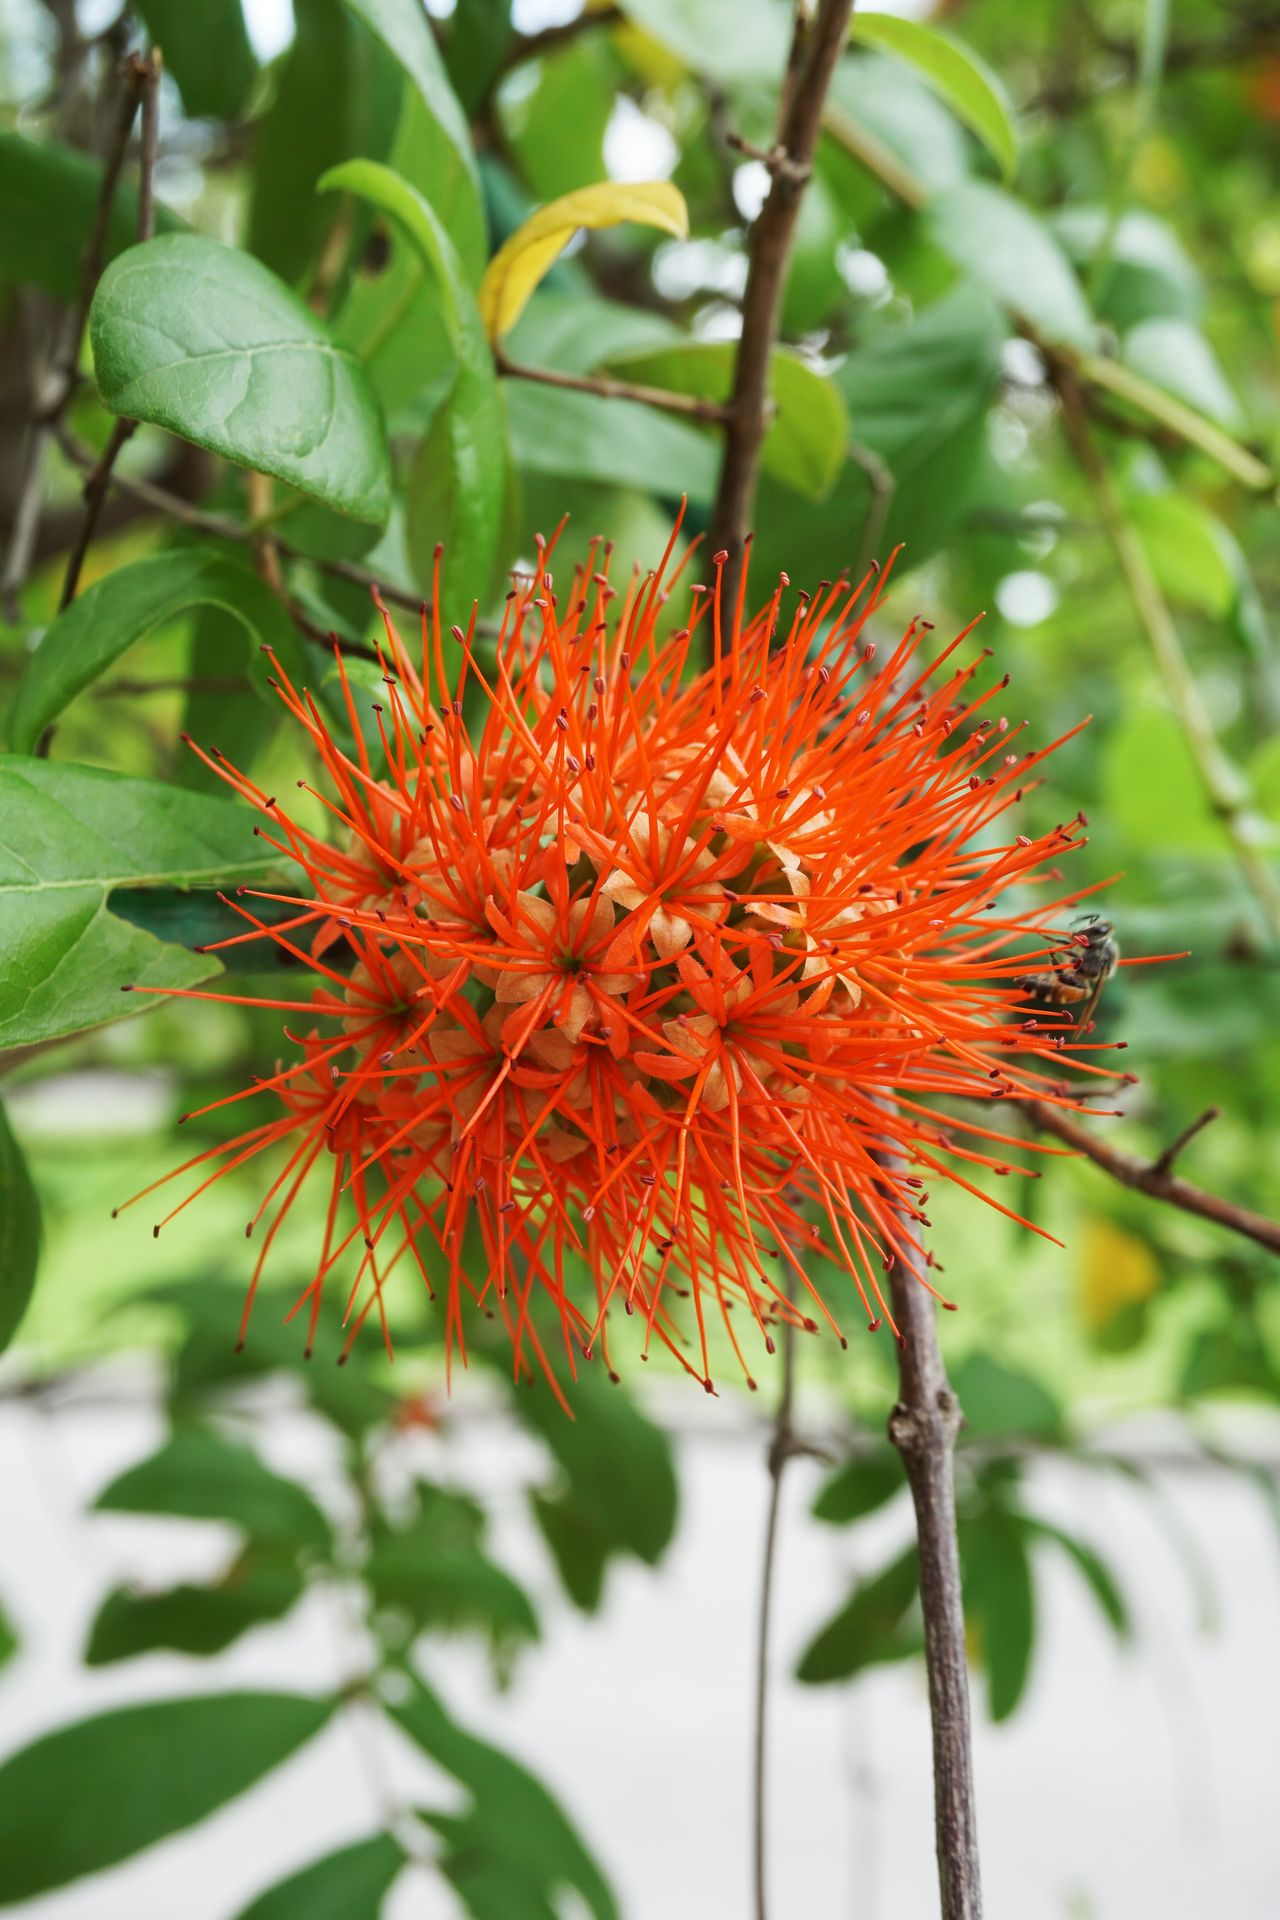 Beauty In Nature Bloom Blooming Blossom Bush Willow Close-up Combretaceae Combretum Erythrophyllum Day Flower Flower Head Focus On Foreground Fragility Freshness Green Color Growth Leaf Nature No People Outdoors Petal Plant Pollen Red